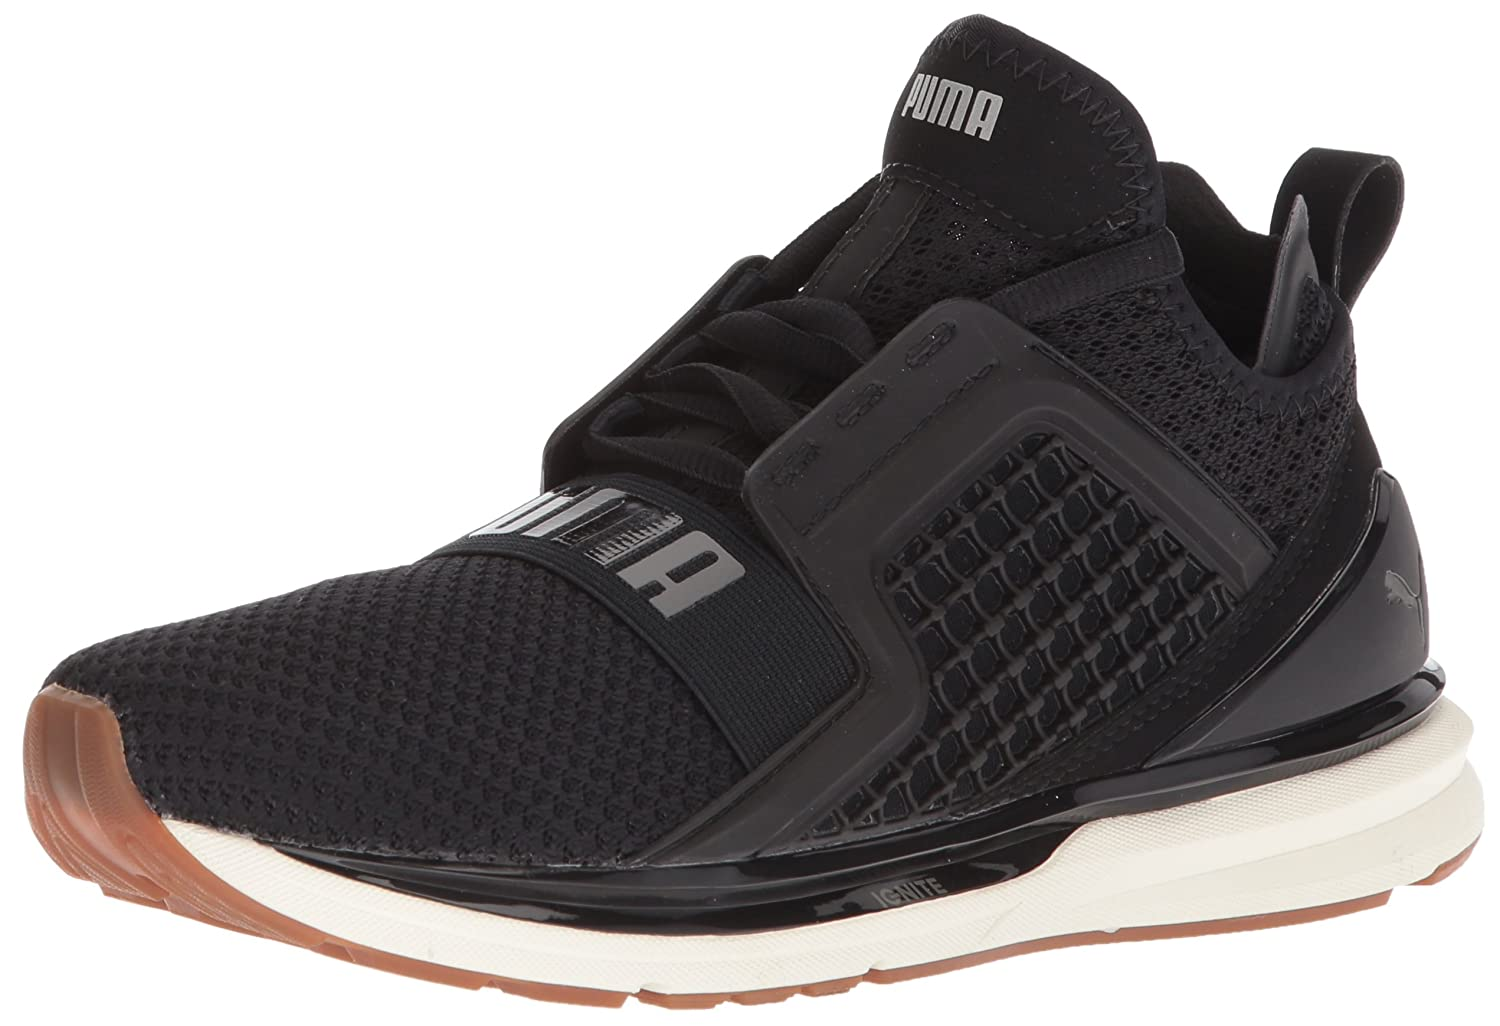 PUMA Women's Ignite Limitless Weave Wn Sneaker B071X77WL3 5.5 M US|Puma Black-rock Ridge